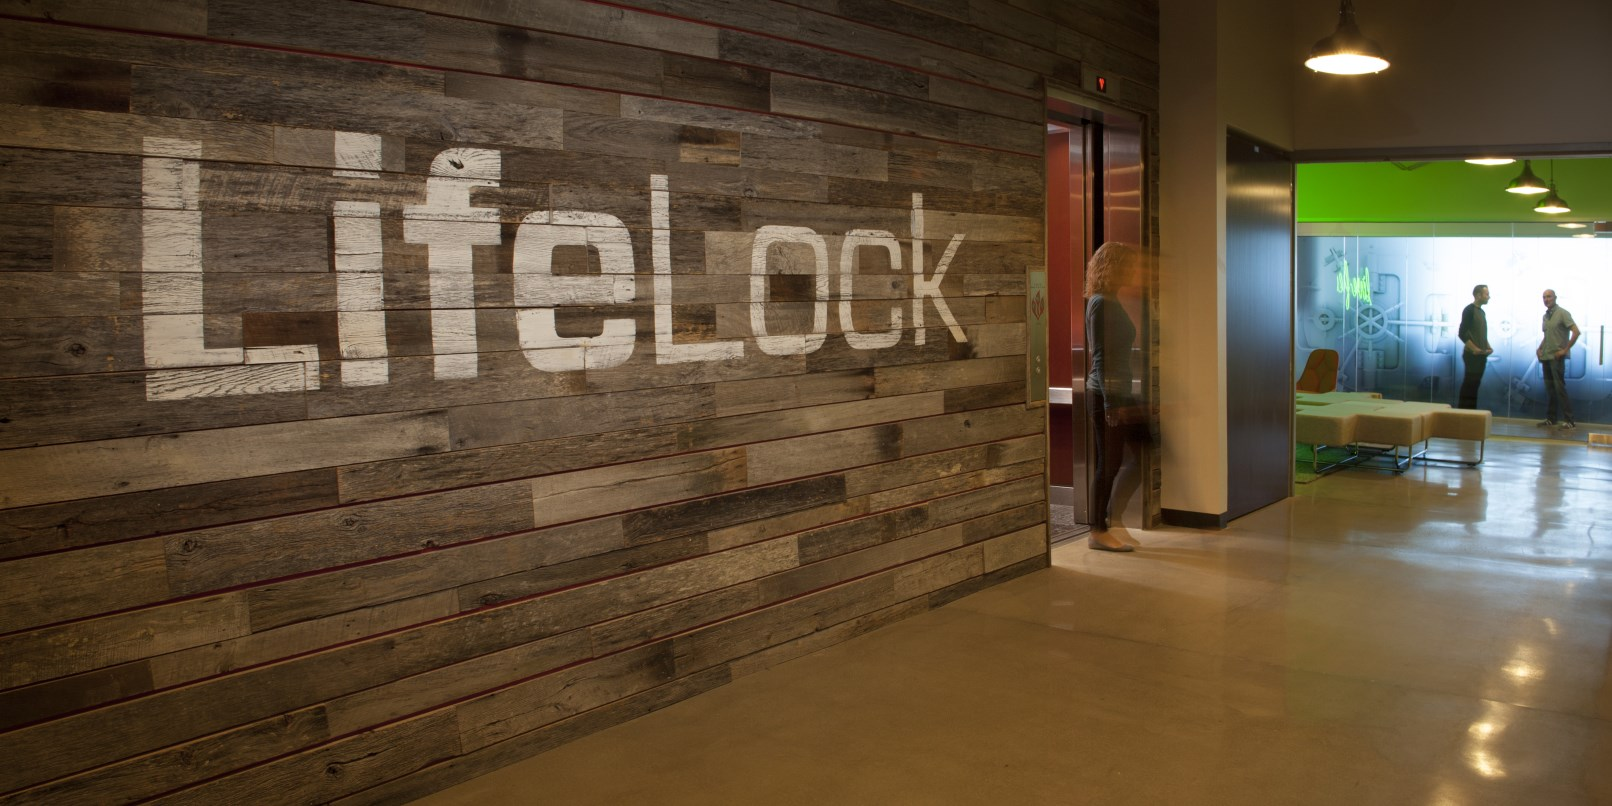 Identity theft monitoring firm Lifelock to pay $100m because it couldn't protect customer data